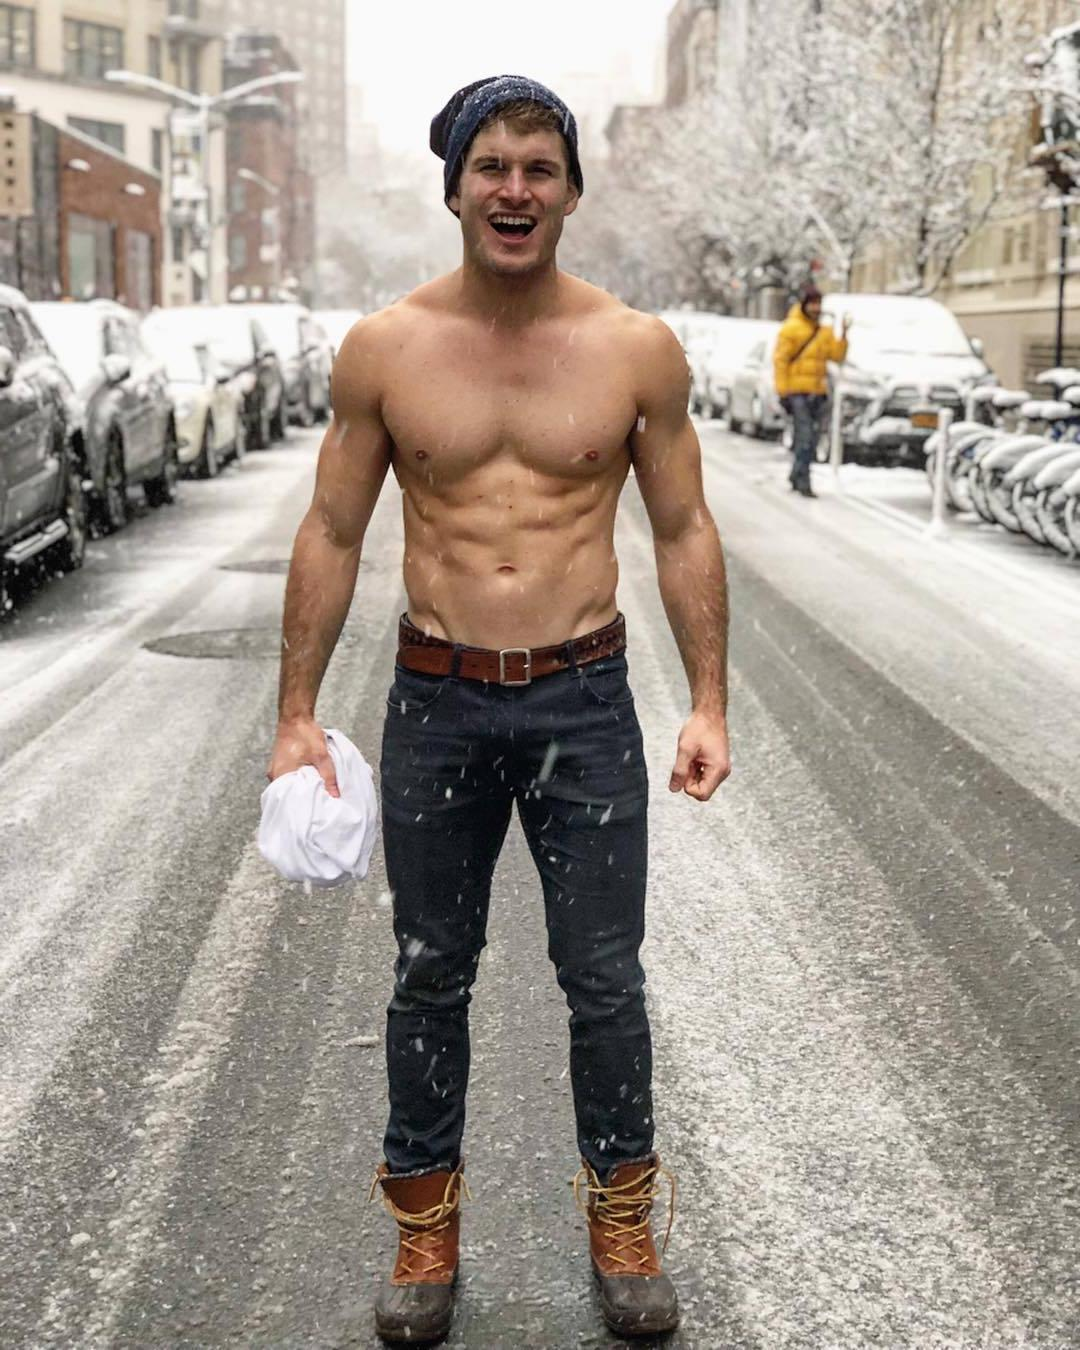 brave-shirtless-fit-bro-vline-body-abs-jeans-beanie-freezing-outside-snowing-city-street